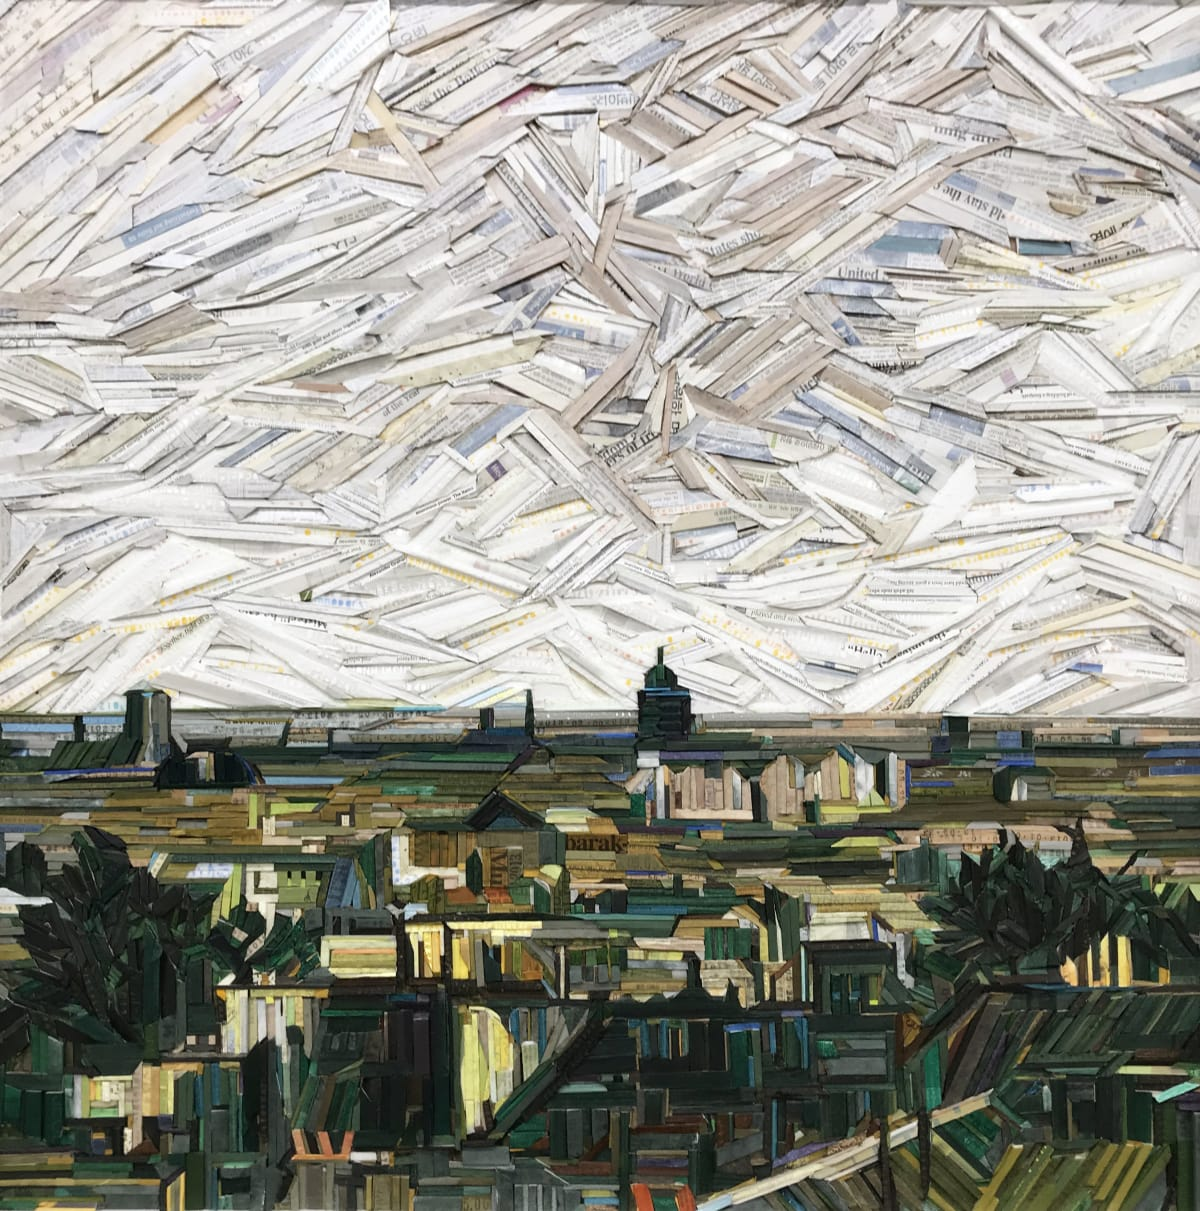 Kyu-Hak Lee, Monument - View of the Roofs of Paris, 2013